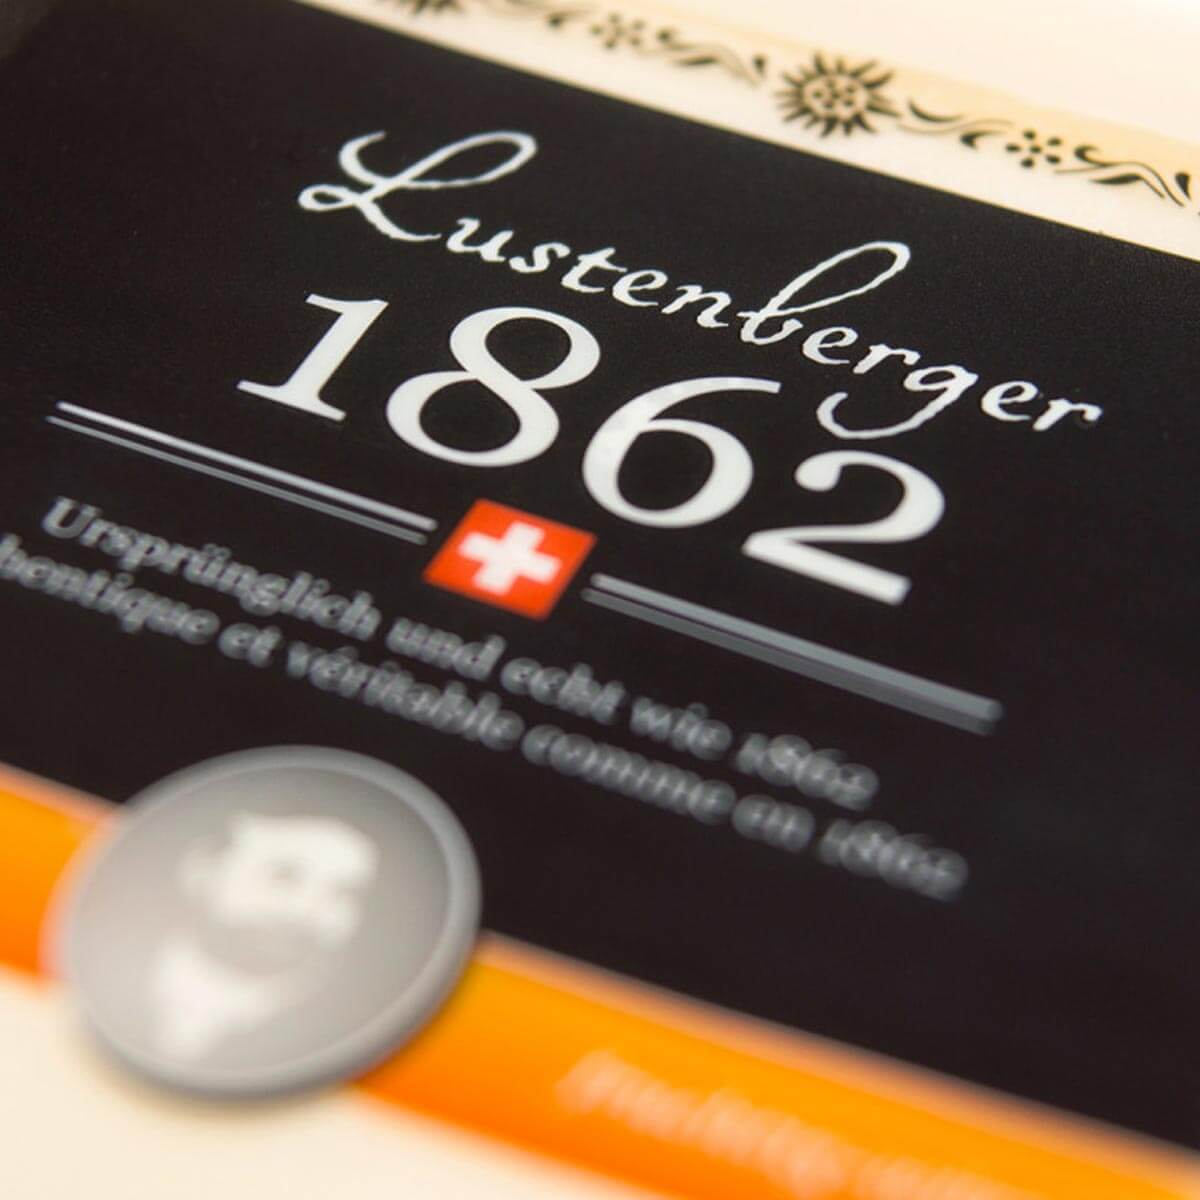 Packaging-Lustenberger-Slider